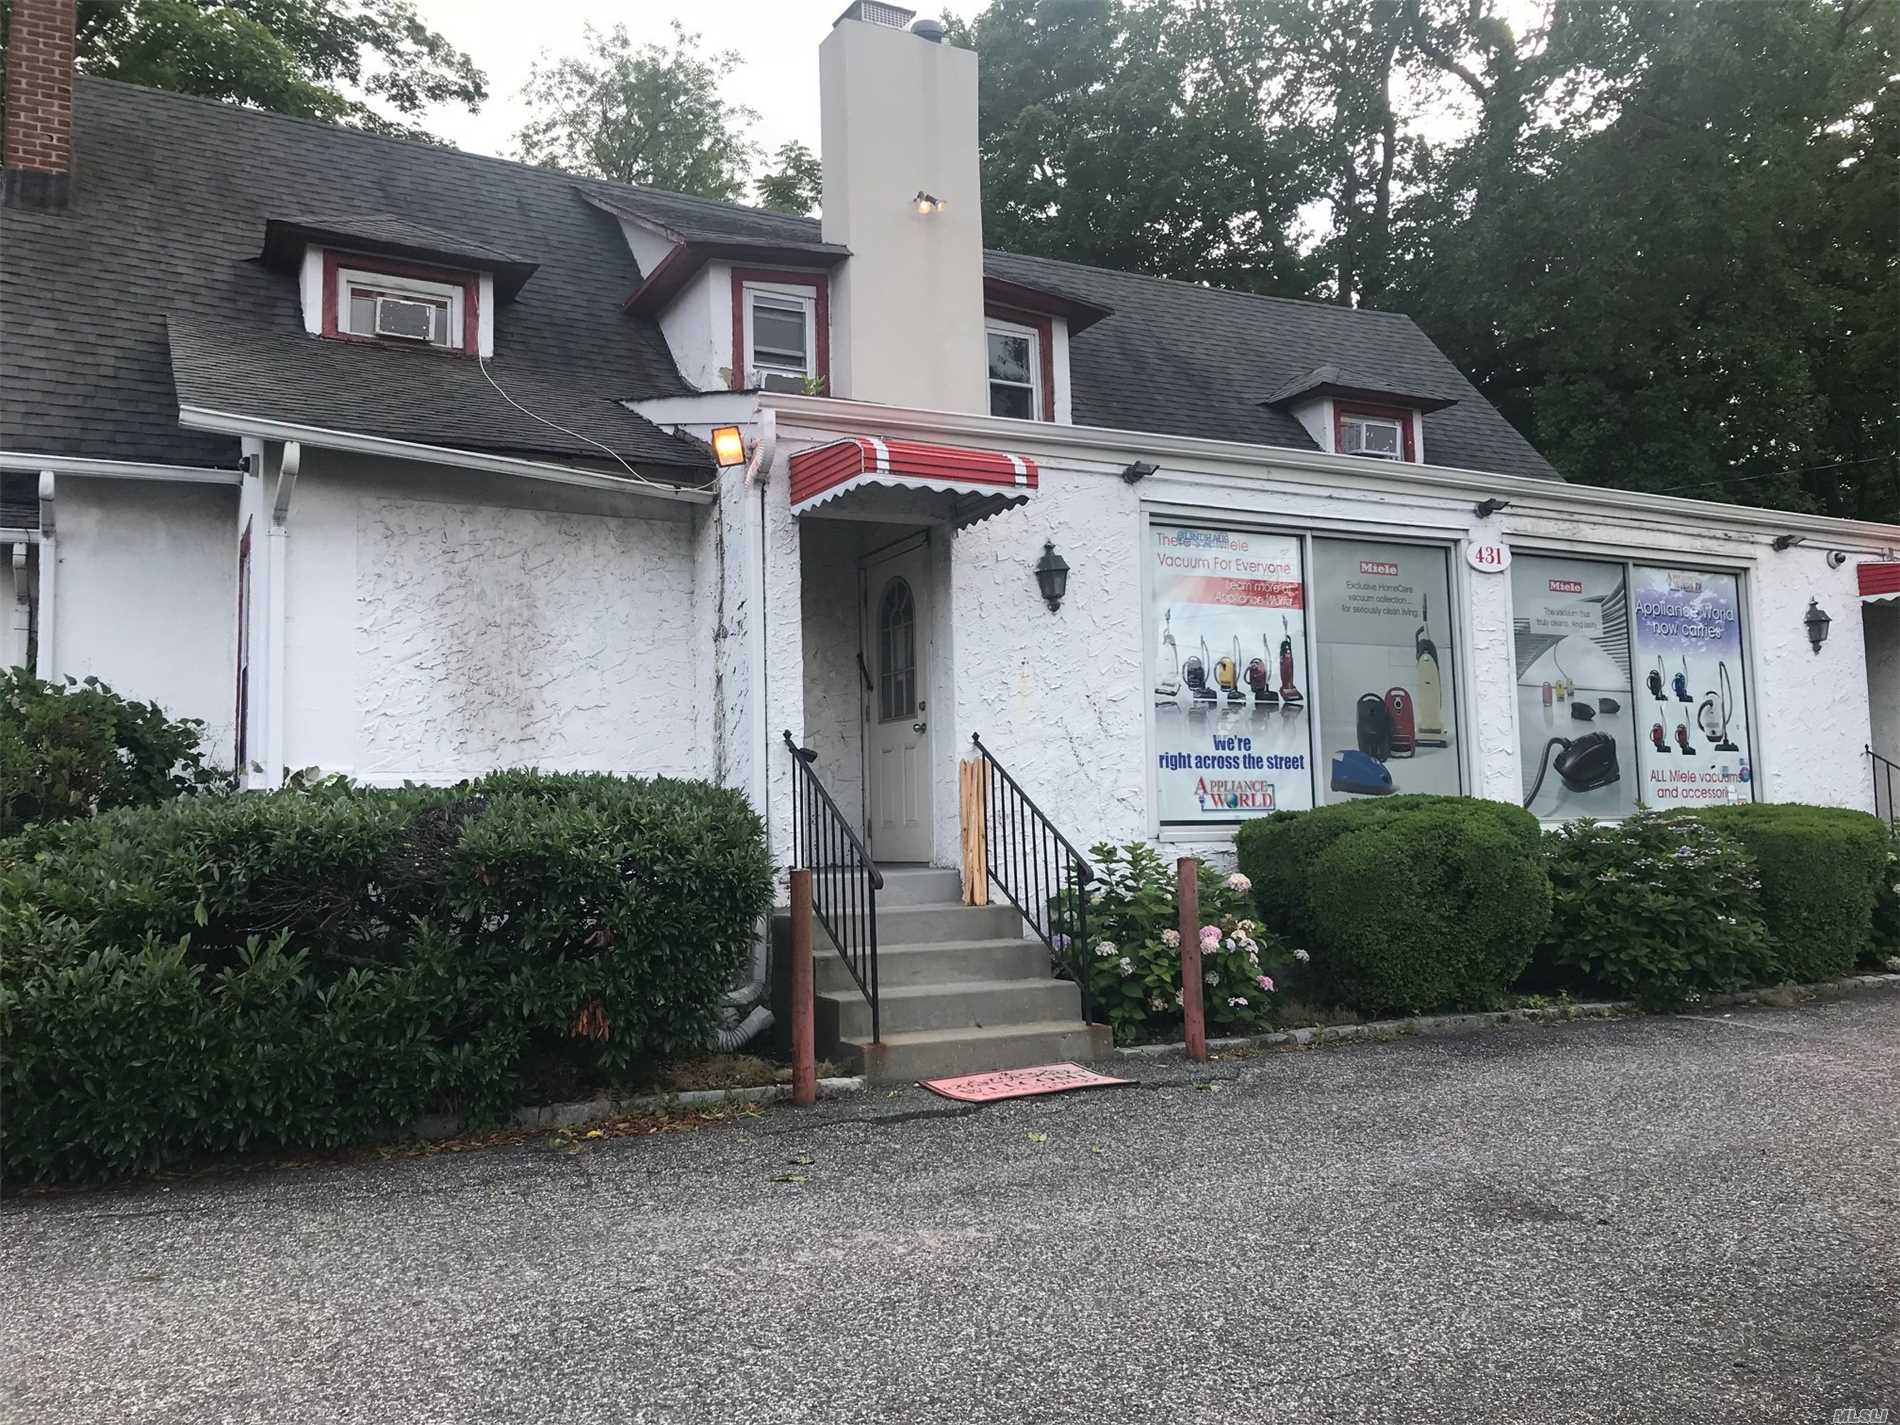 Short Term Lease, Great For Pop Up Store! Prime Village Location With Private Parking Lot. Very Spacious, Open Layout, Great For Seasonal Retail Or Office Space. Available Immediately. Landlord Will Only Consider A Maximum Of 1 Year Lease At This Time.